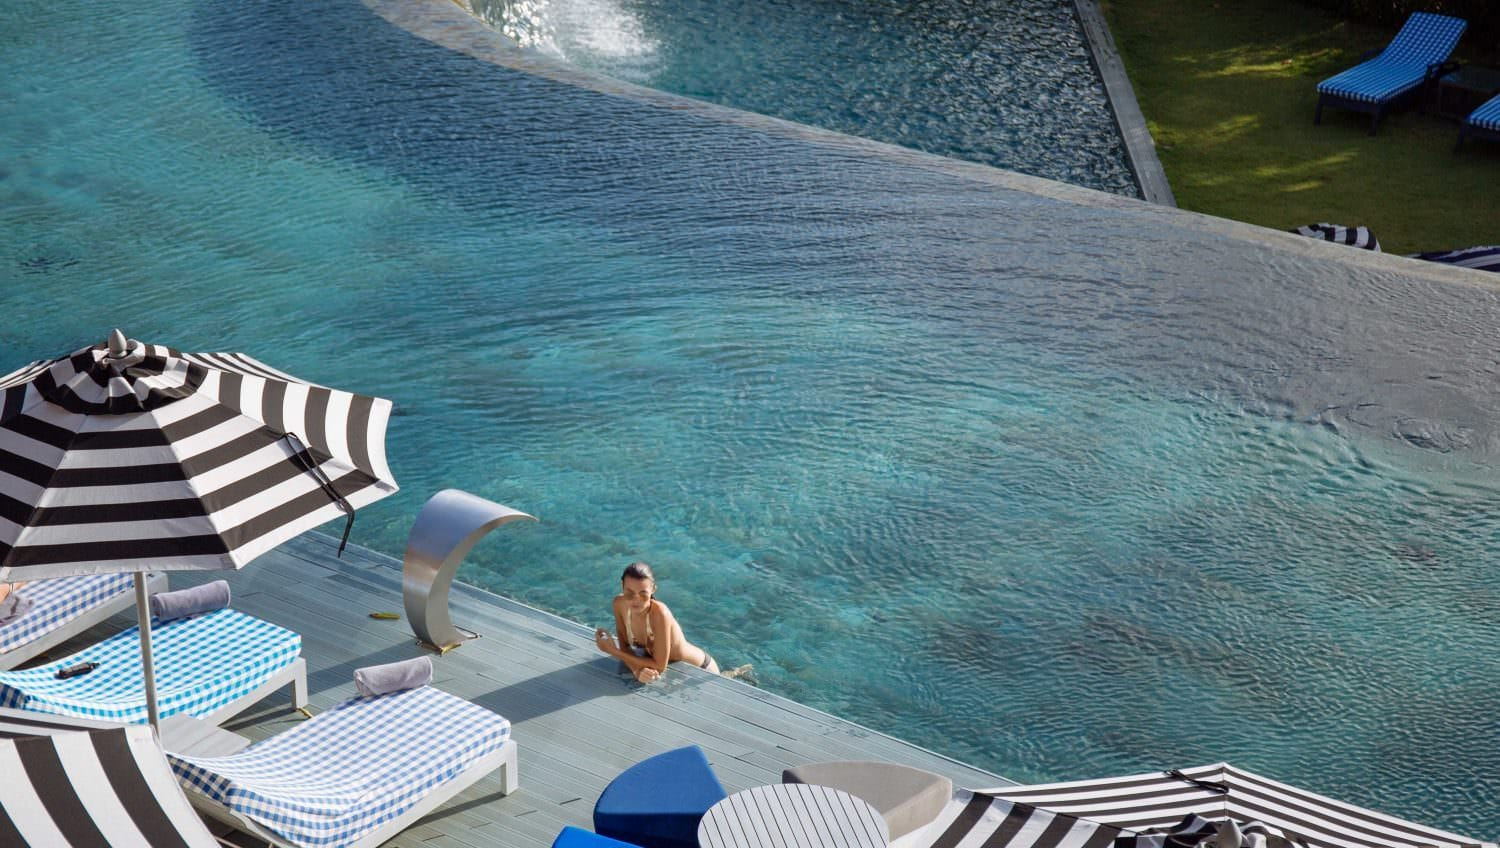 7-Sri-panwa-luxury-pool-villa-resort-spa-Phuket-Thailand